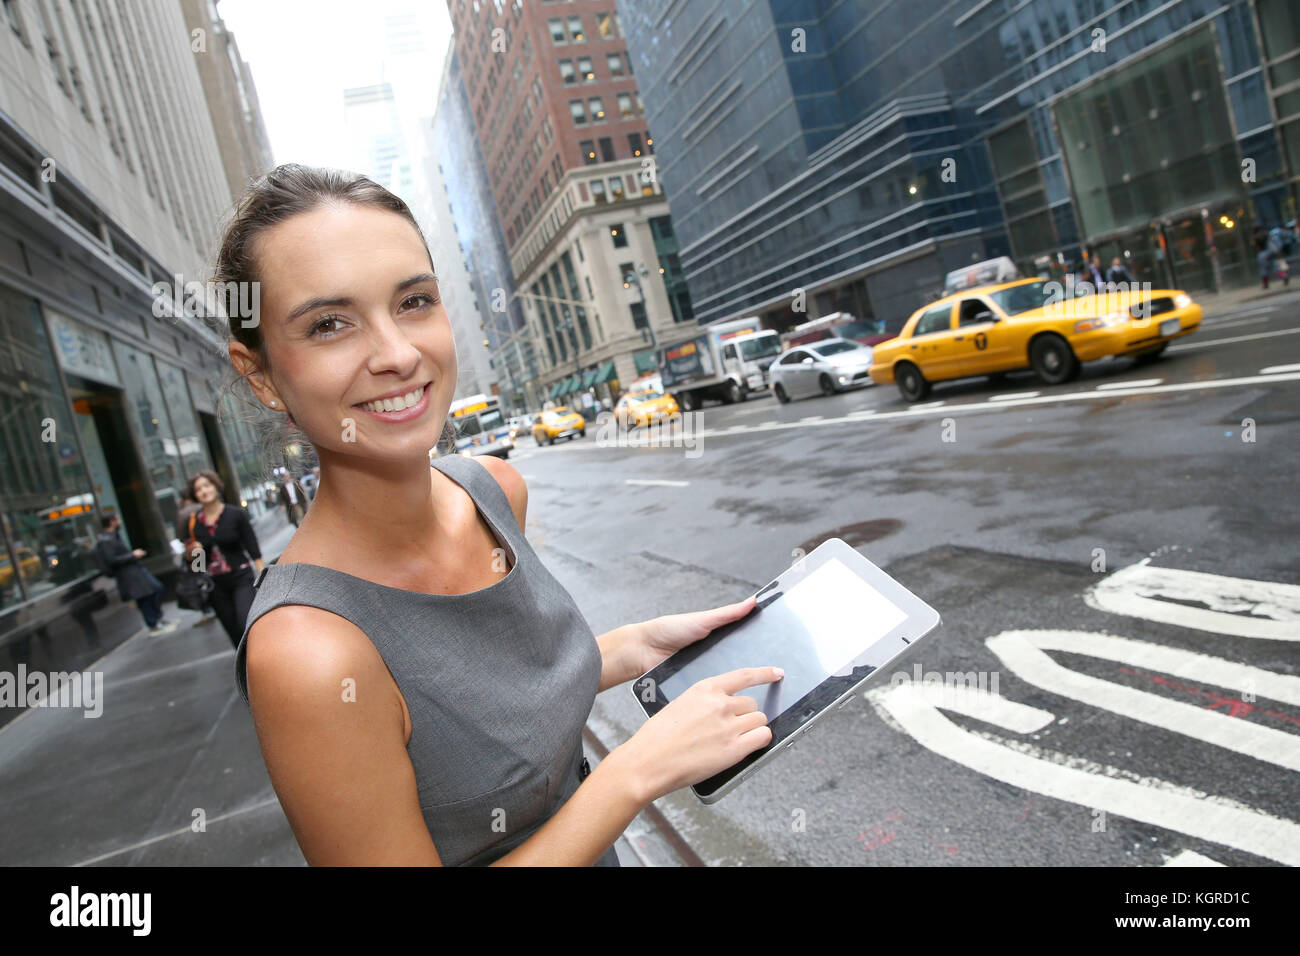 Businesswoman with tablet waiting for a taxi cab in NYC Stock Photo